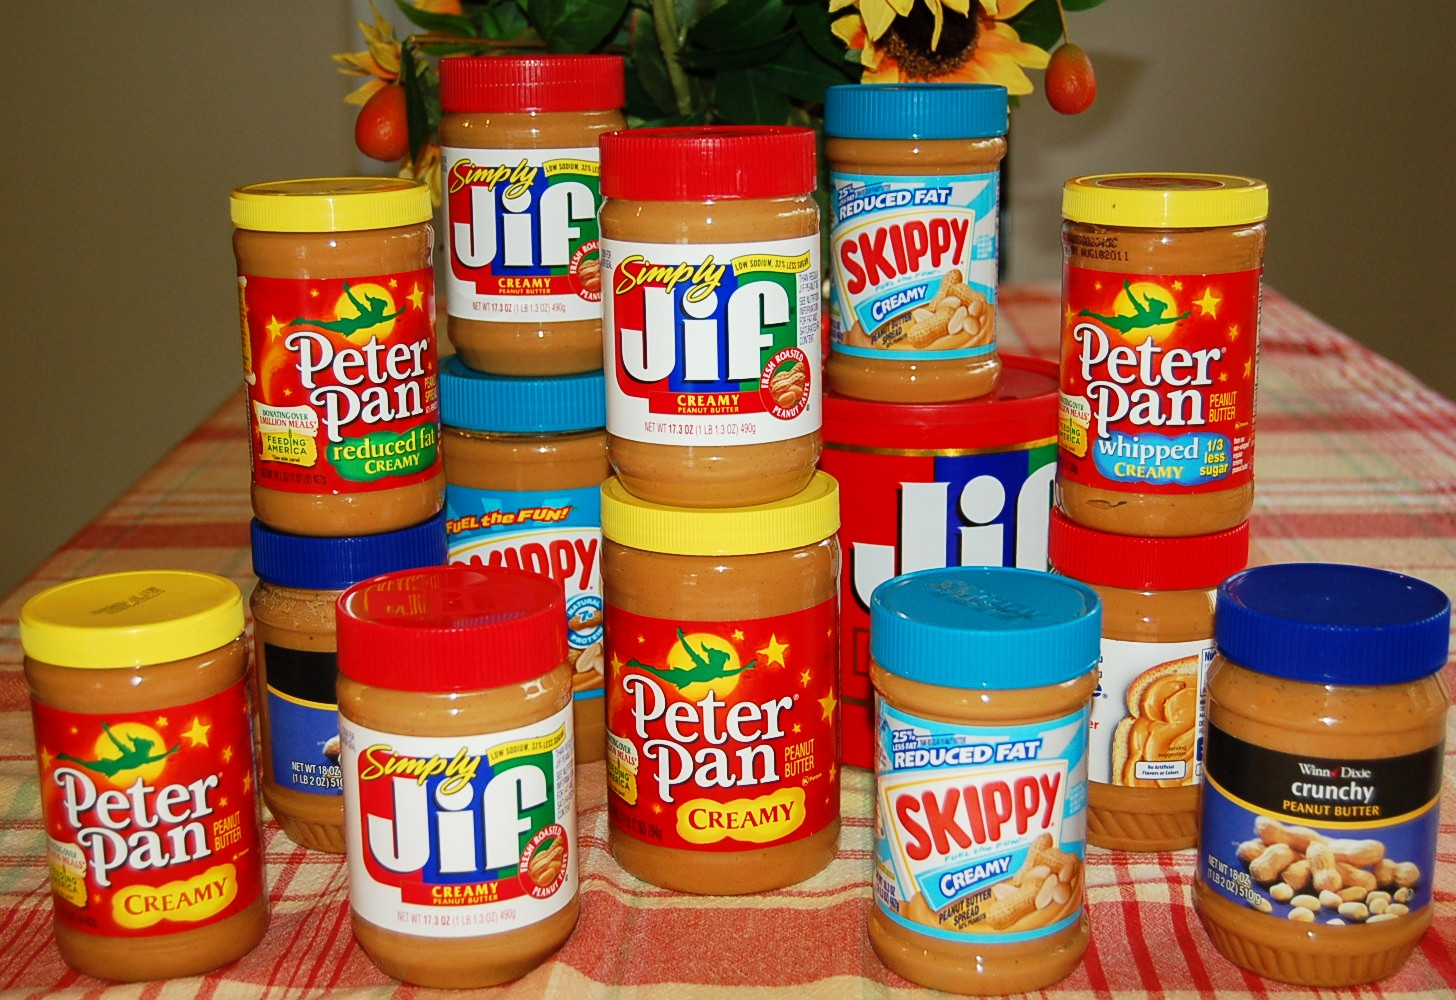 Take the Peanut Butter Challenge!  Donate jars of unopened peanut butter to local food pantries through your County Extension Office.